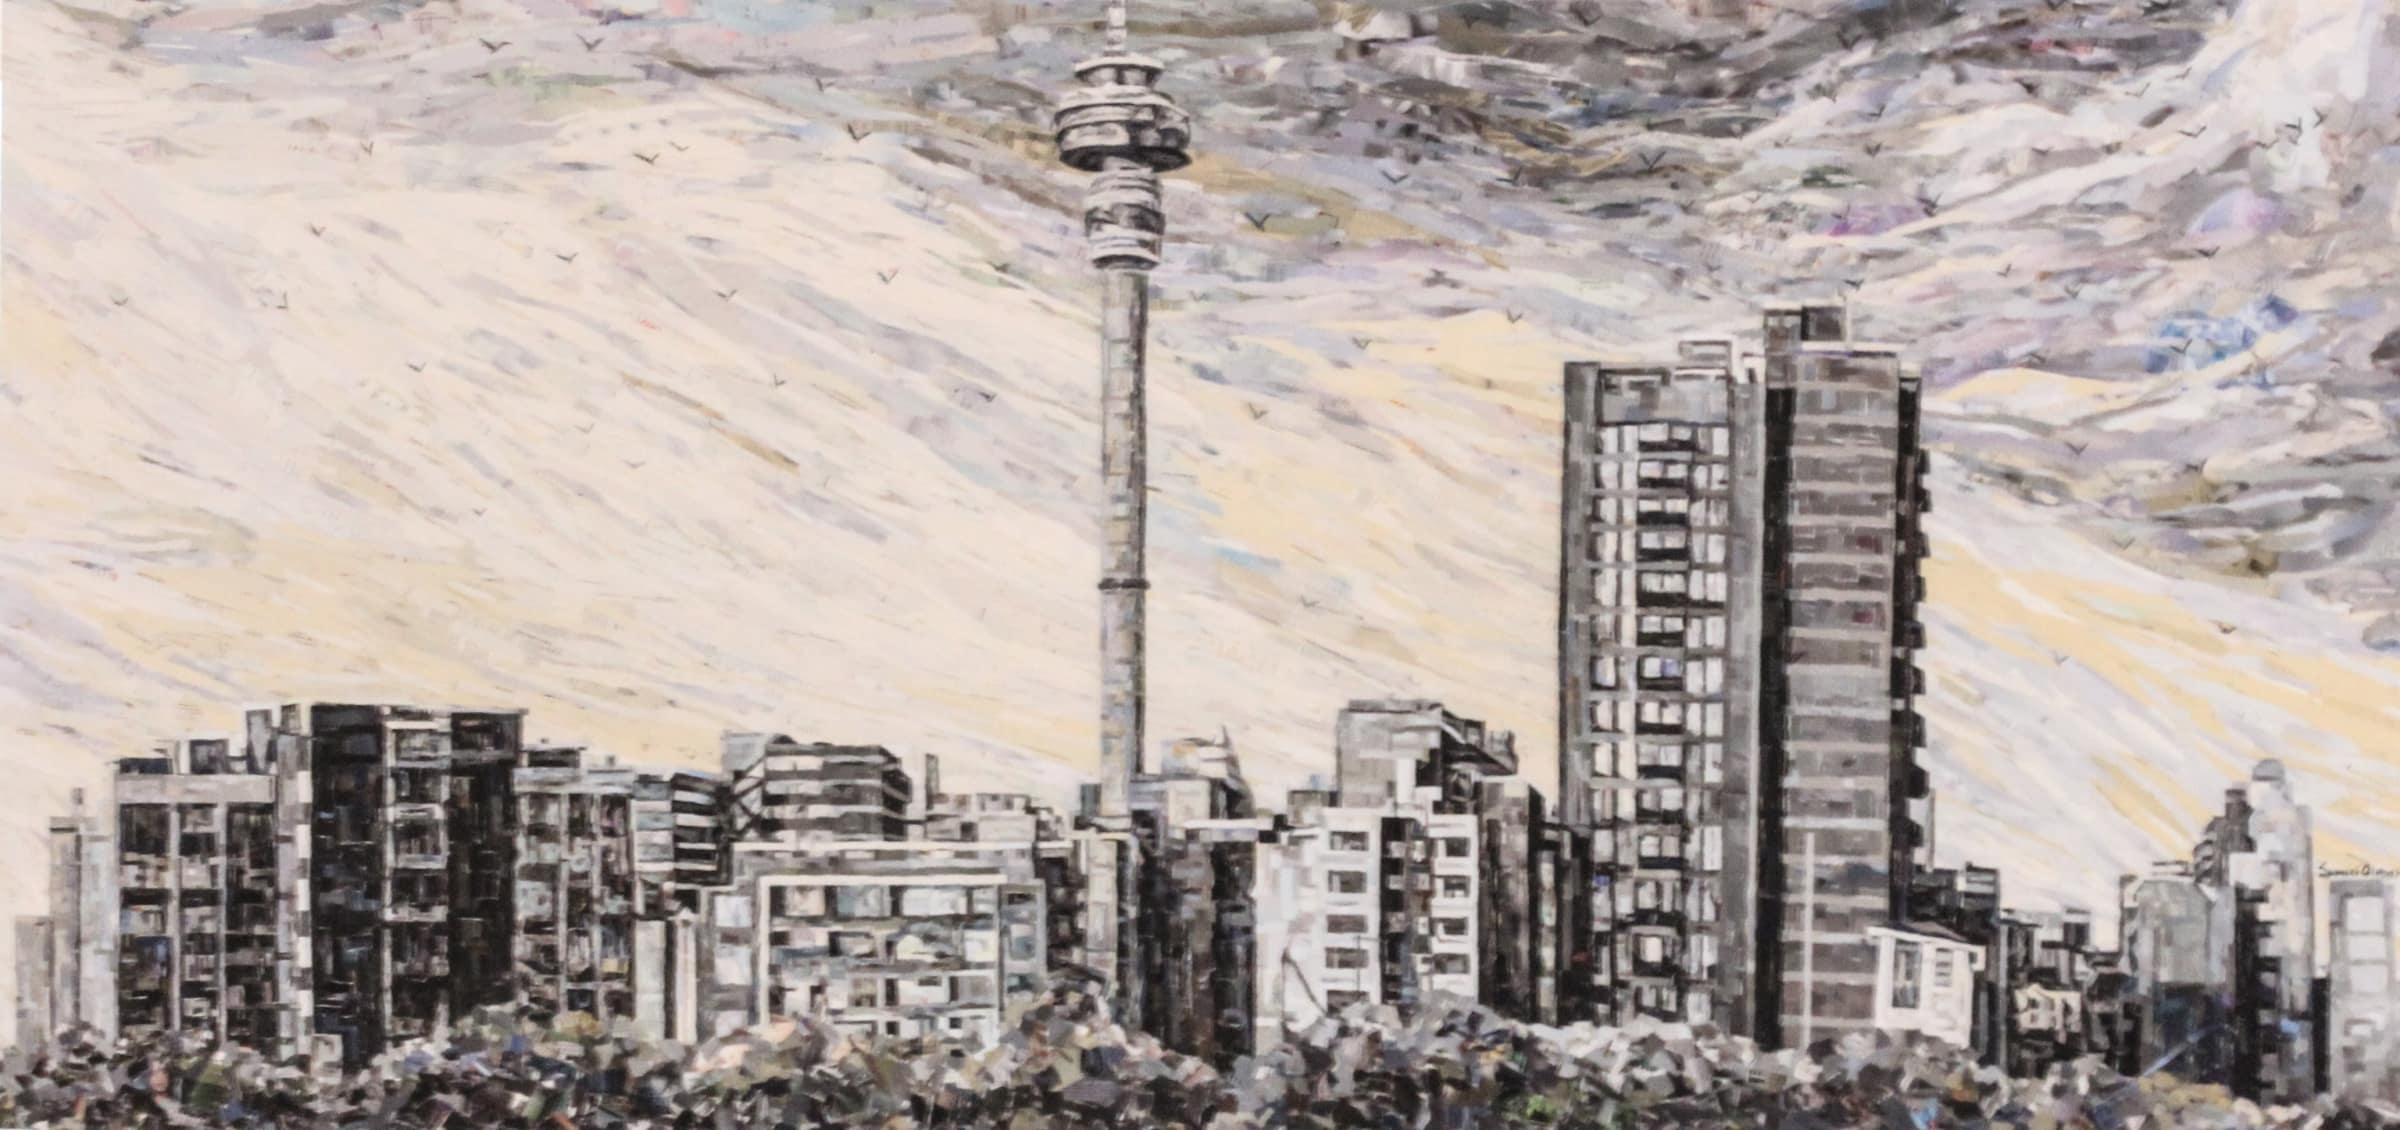 <span class=&#34;link fancybox-details-link&#34;><a href=&#34;/artworks/categories/14/3170-olatunji-sanusi-joburg-skyline-2018/&#34;>View Detail Page</a></span><div class=&#34;artist&#34;><strong>Olatunji Sanusi</strong></div> <div class=&#34;title&#34;><em>Joburg Skyline</em>, 2018</div> <div class=&#34;medium&#34;>Paper Collage On Canvas </div> <div class=&#34;dimensions&#34;>141cm x 300cm</div><div class=&#34;price&#34;>R145,000.00</div>